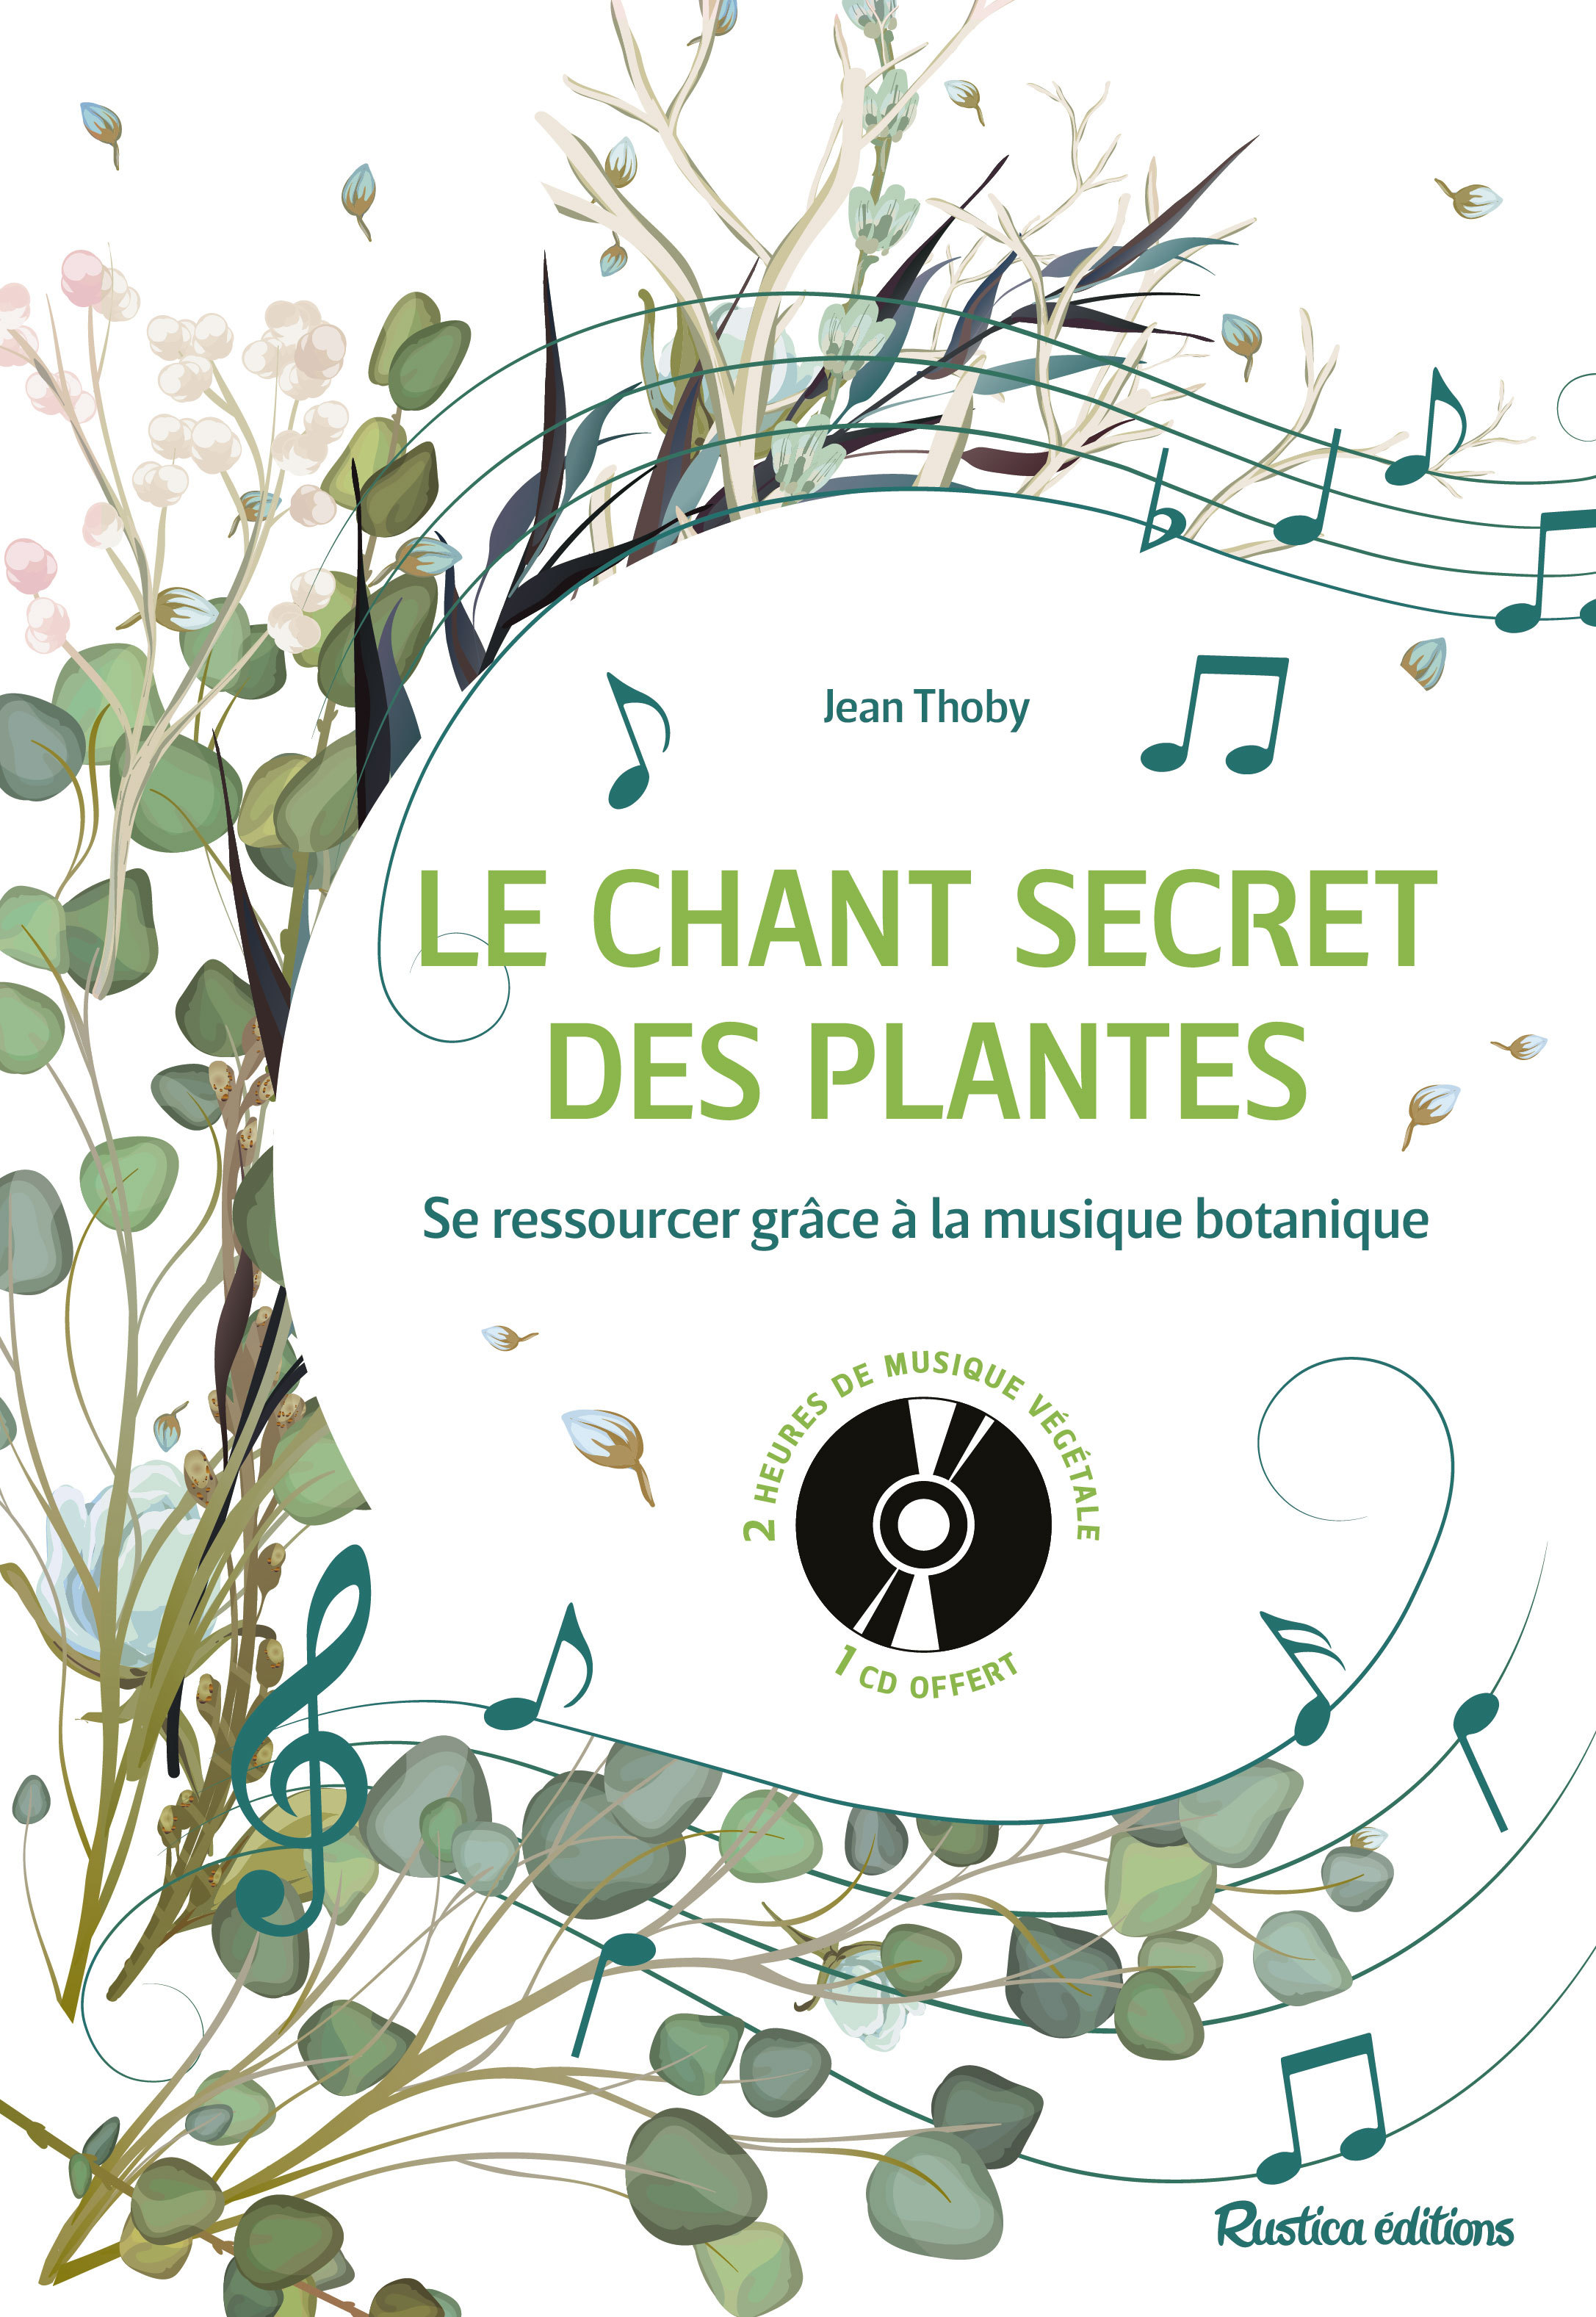 LE CHANT SECRET DES PLANTES